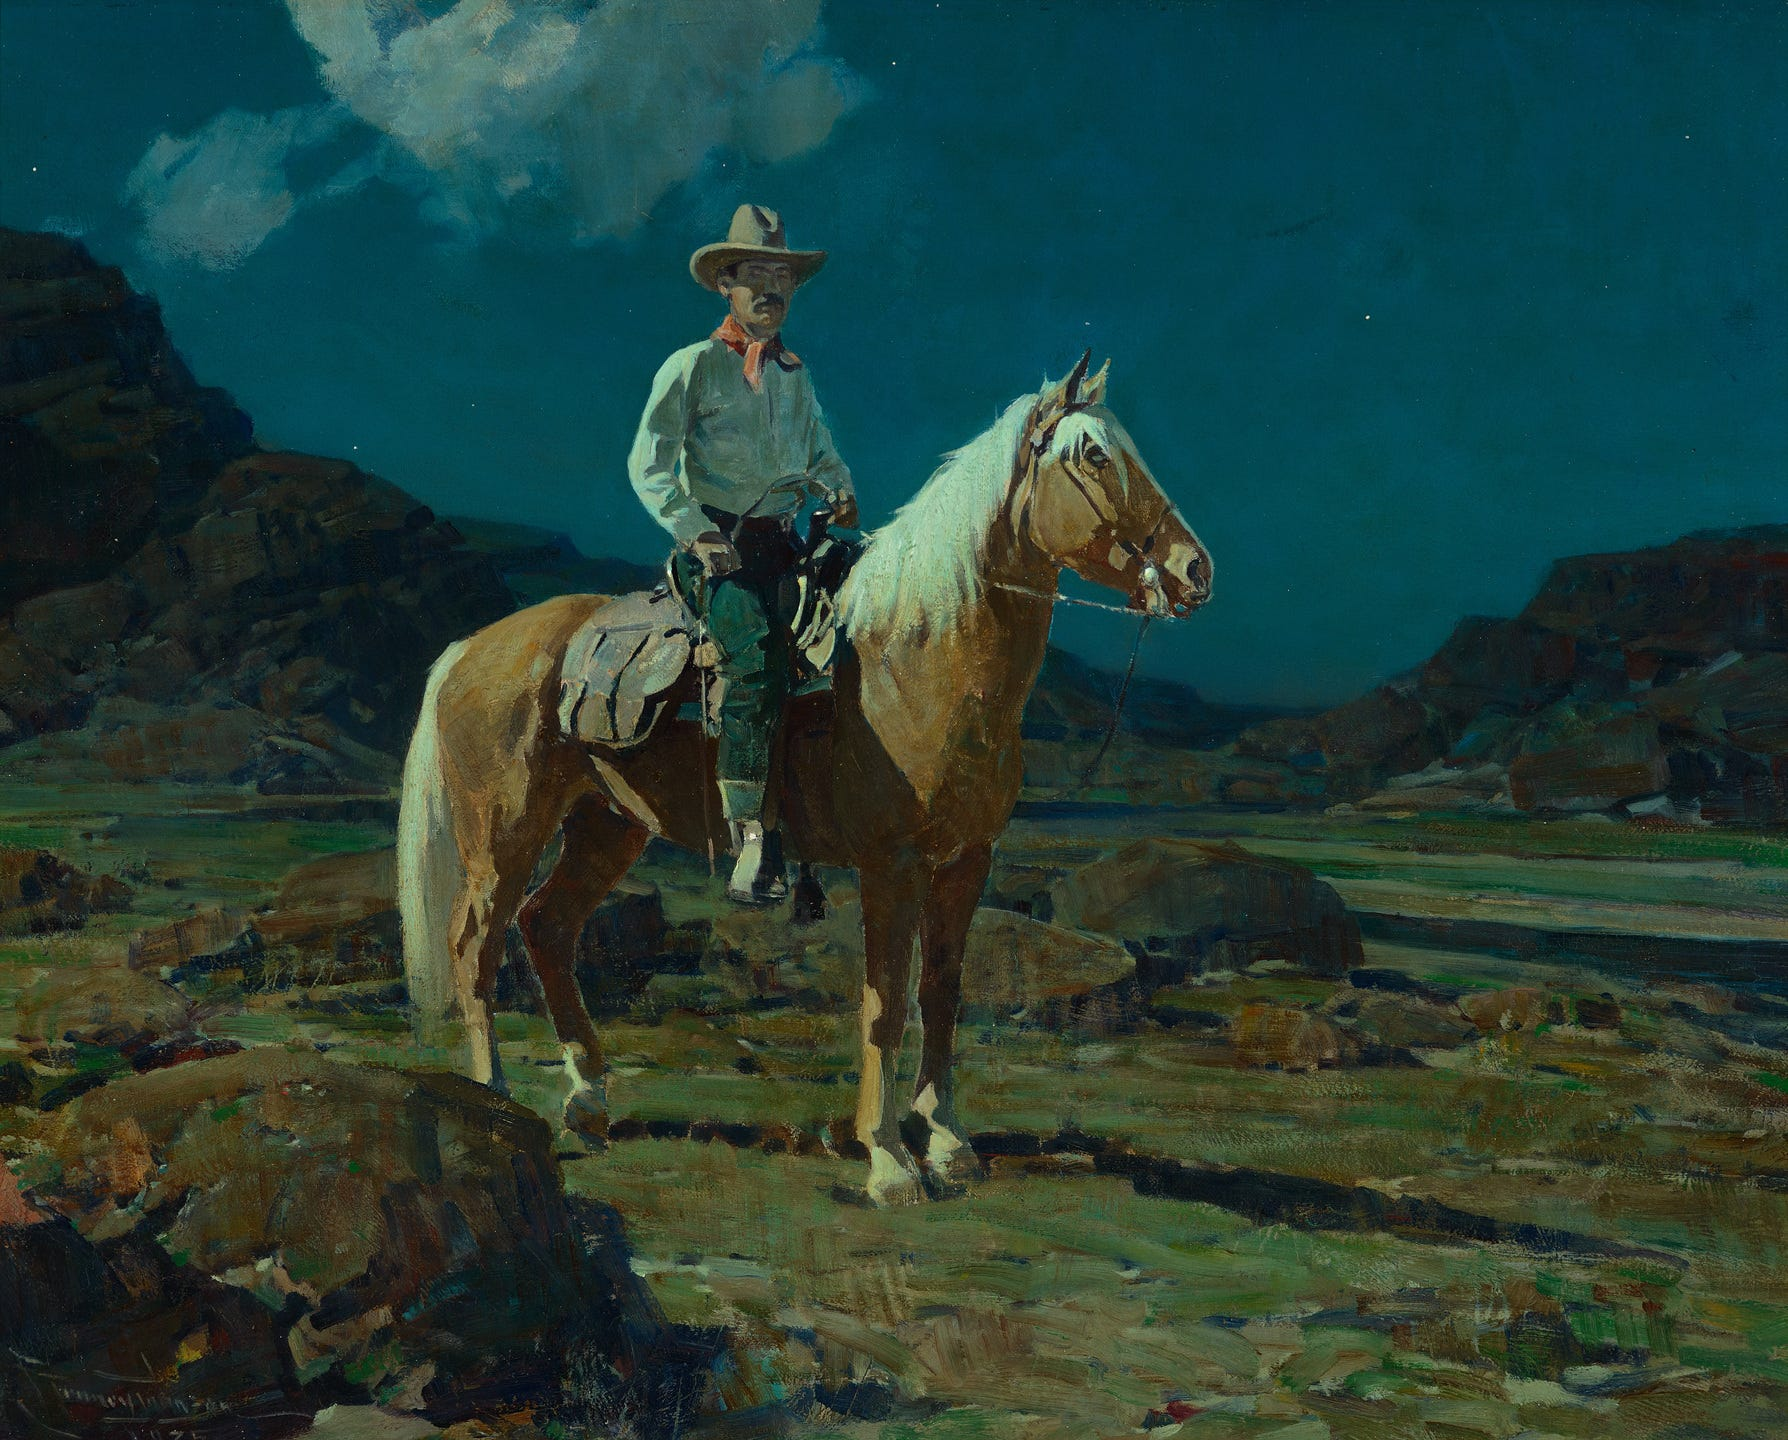 Reno judge tosses lawsuit over alleged fake Western painting | Reno Gazette Journal